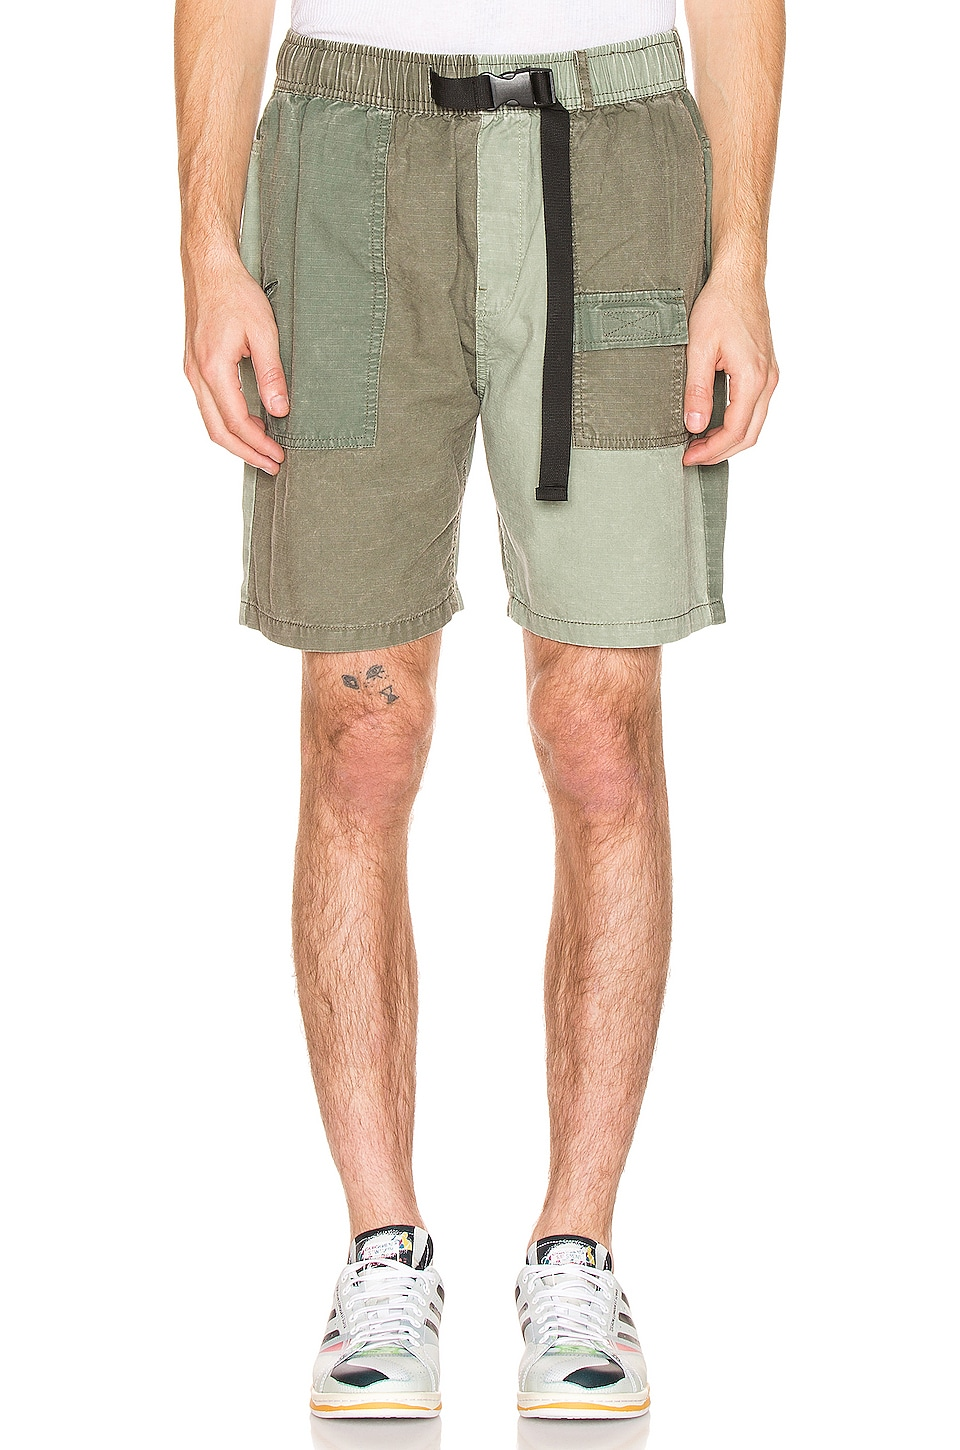 Publish Art Shorts in Olive